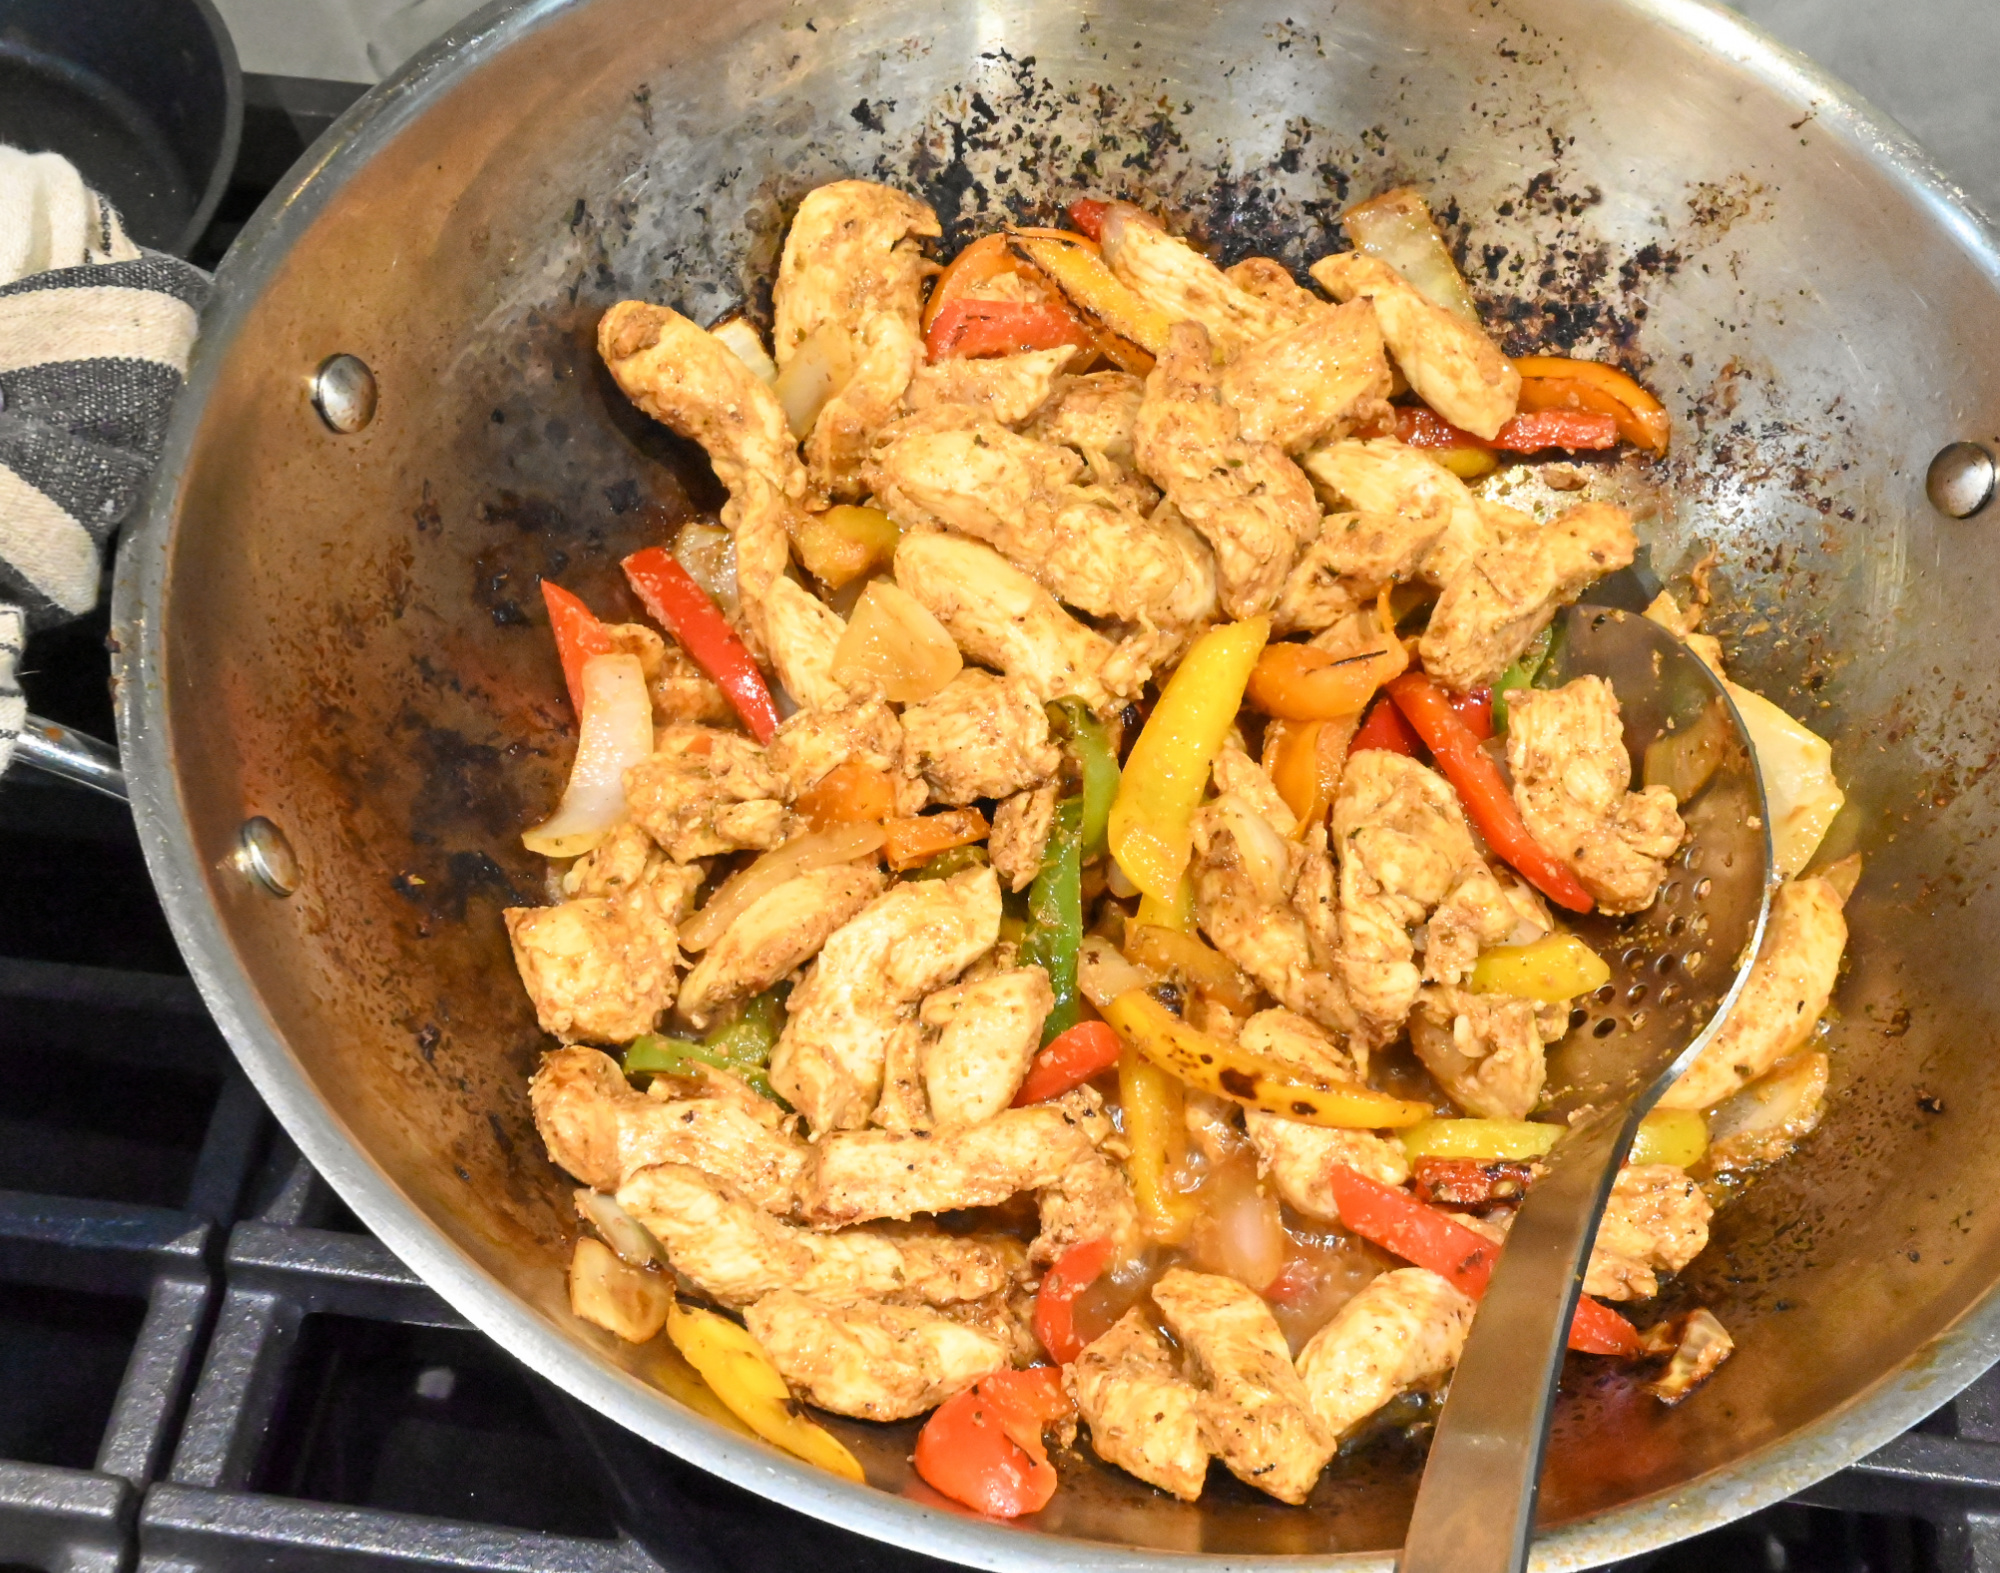 chicken fajitas being cooked in a large wok